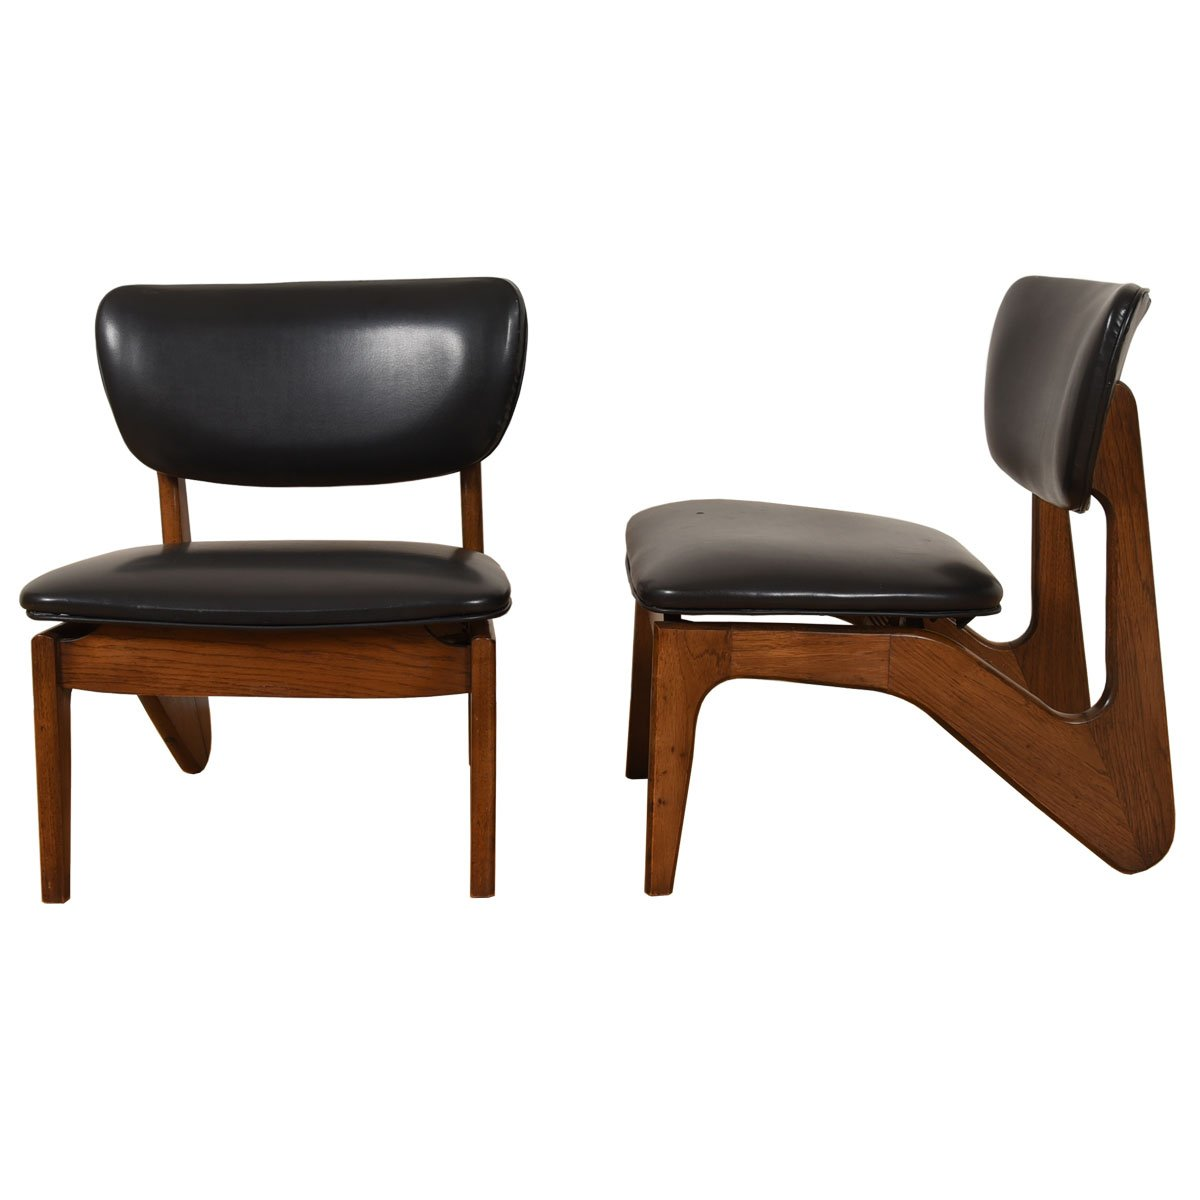 The Low-Riders: Pair, American Modernist Sculpted Accent Chairs